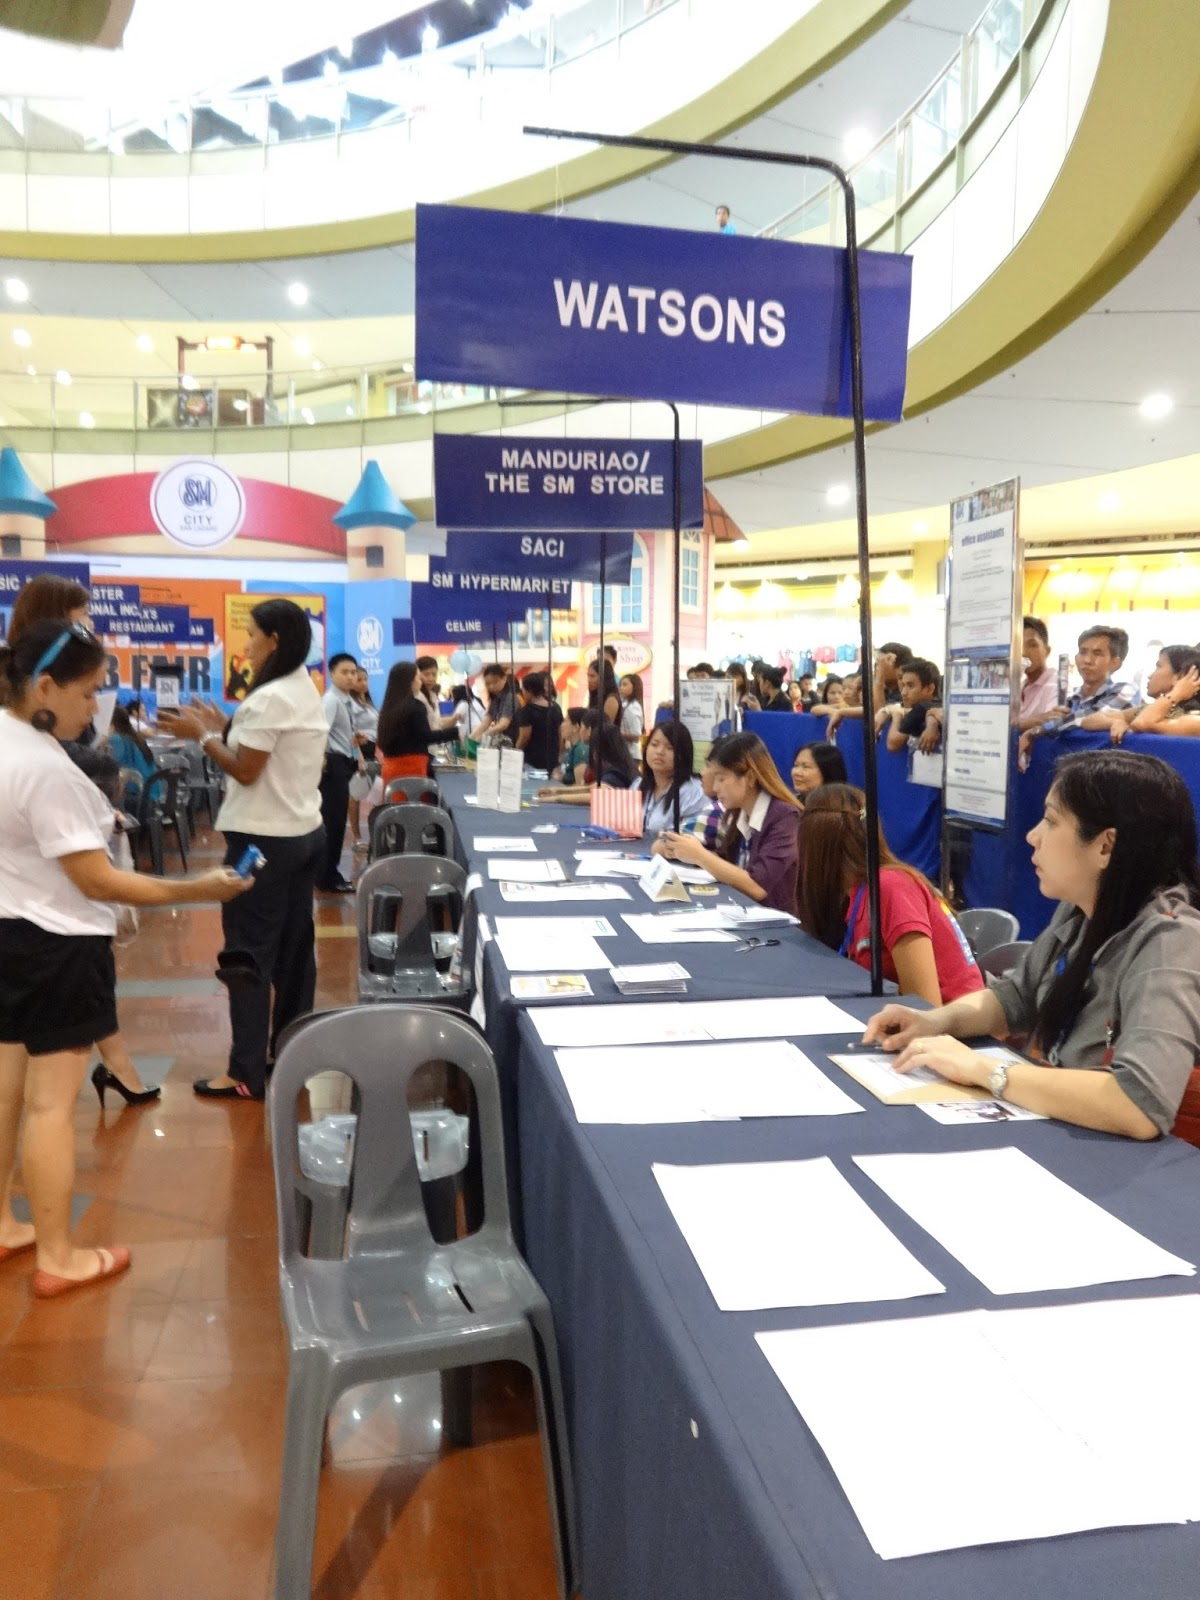 my so called life sm city san lazaro s job fair two thumbs up it s a great opportunity to meet employers where else can you see many employers in one location or be seen by them